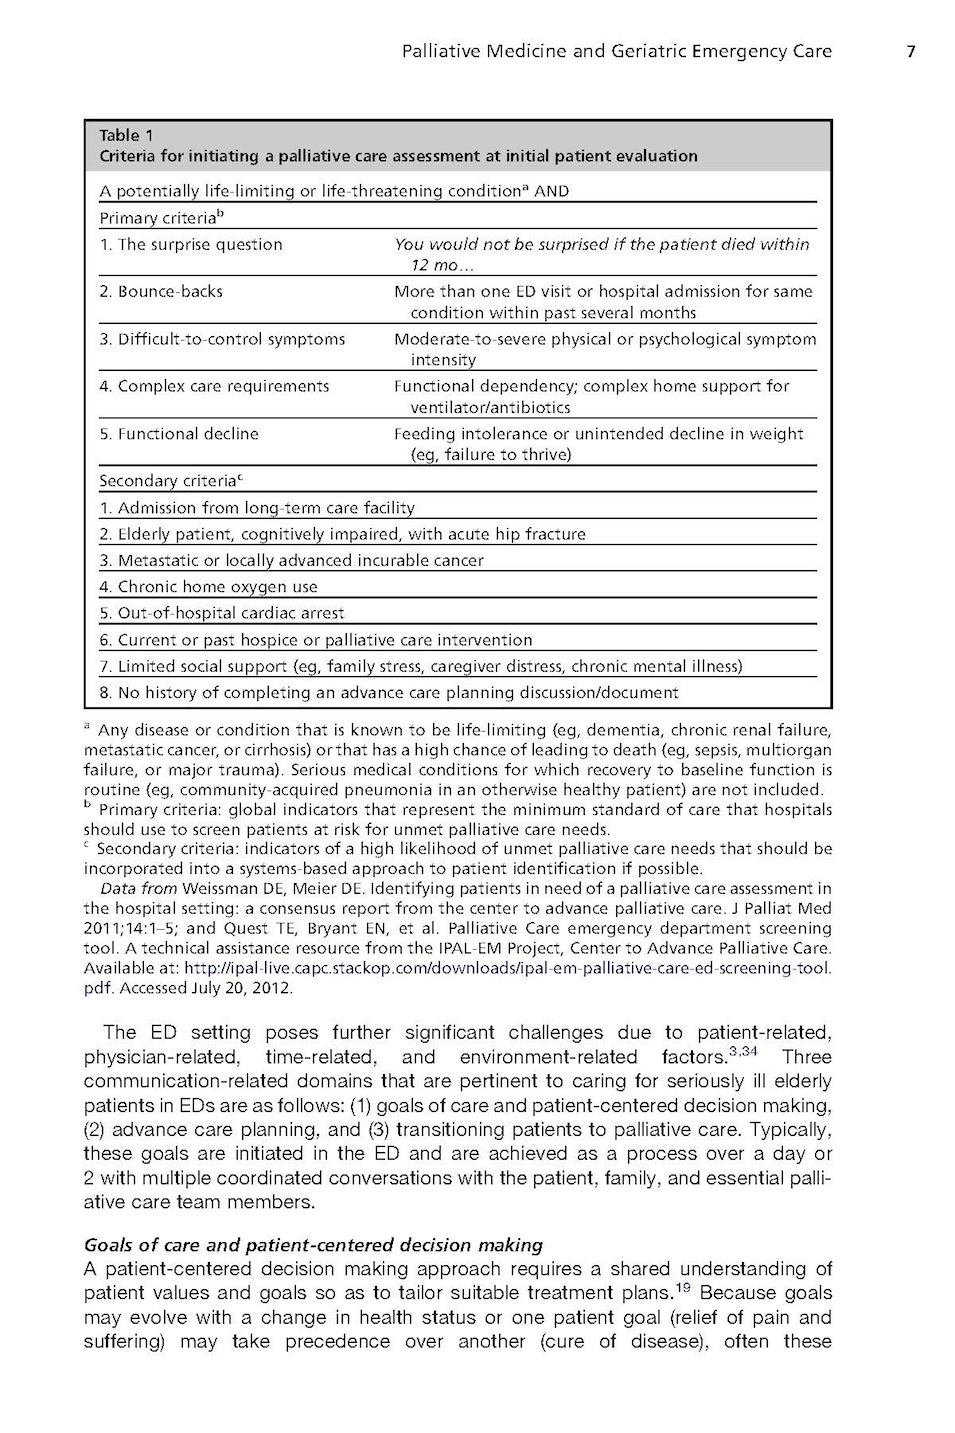 Clinics of NA_Palliative Med and Geriatric Emerg Care_Page_07